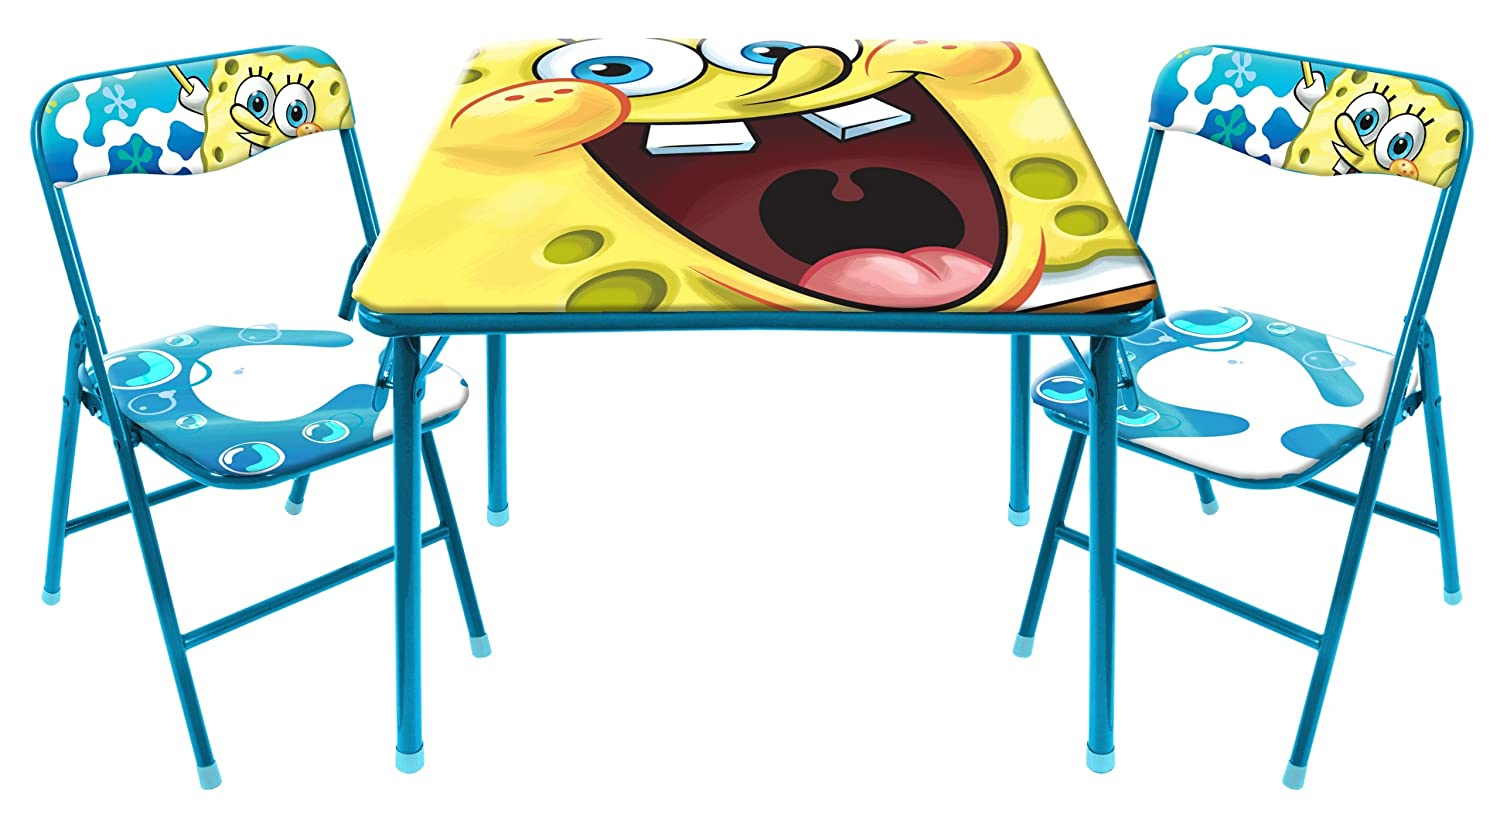 Nickelodeon SpongeBob Square Table and Chair Set Idea Nuova - LA WN300313